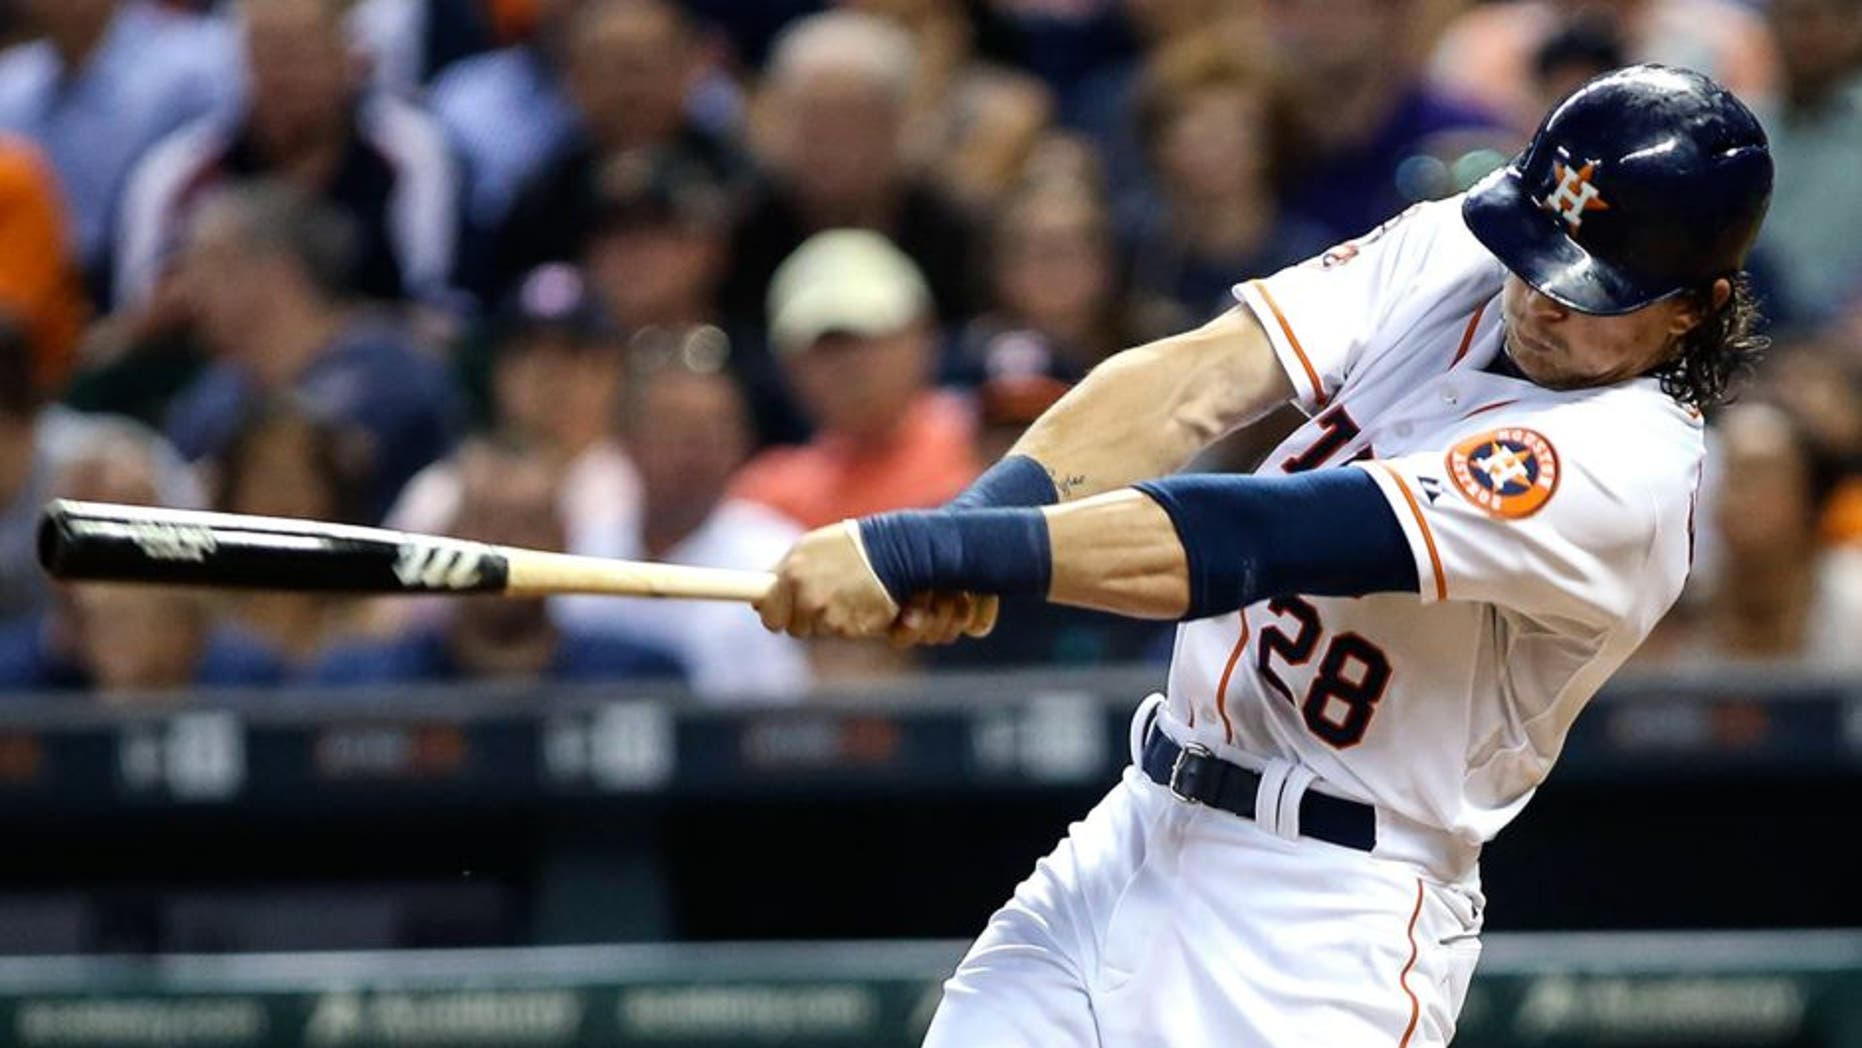 Jun 25, 2015; Houston, TX, USA; Houston Astros center fielder Colby Rasmus (28) drives in a run with a sacrifice fly during the fourth inning against the New York Yankees at Minute Maid Park. Mandatory Credit: Troy Taormina-USA TODAY Sports